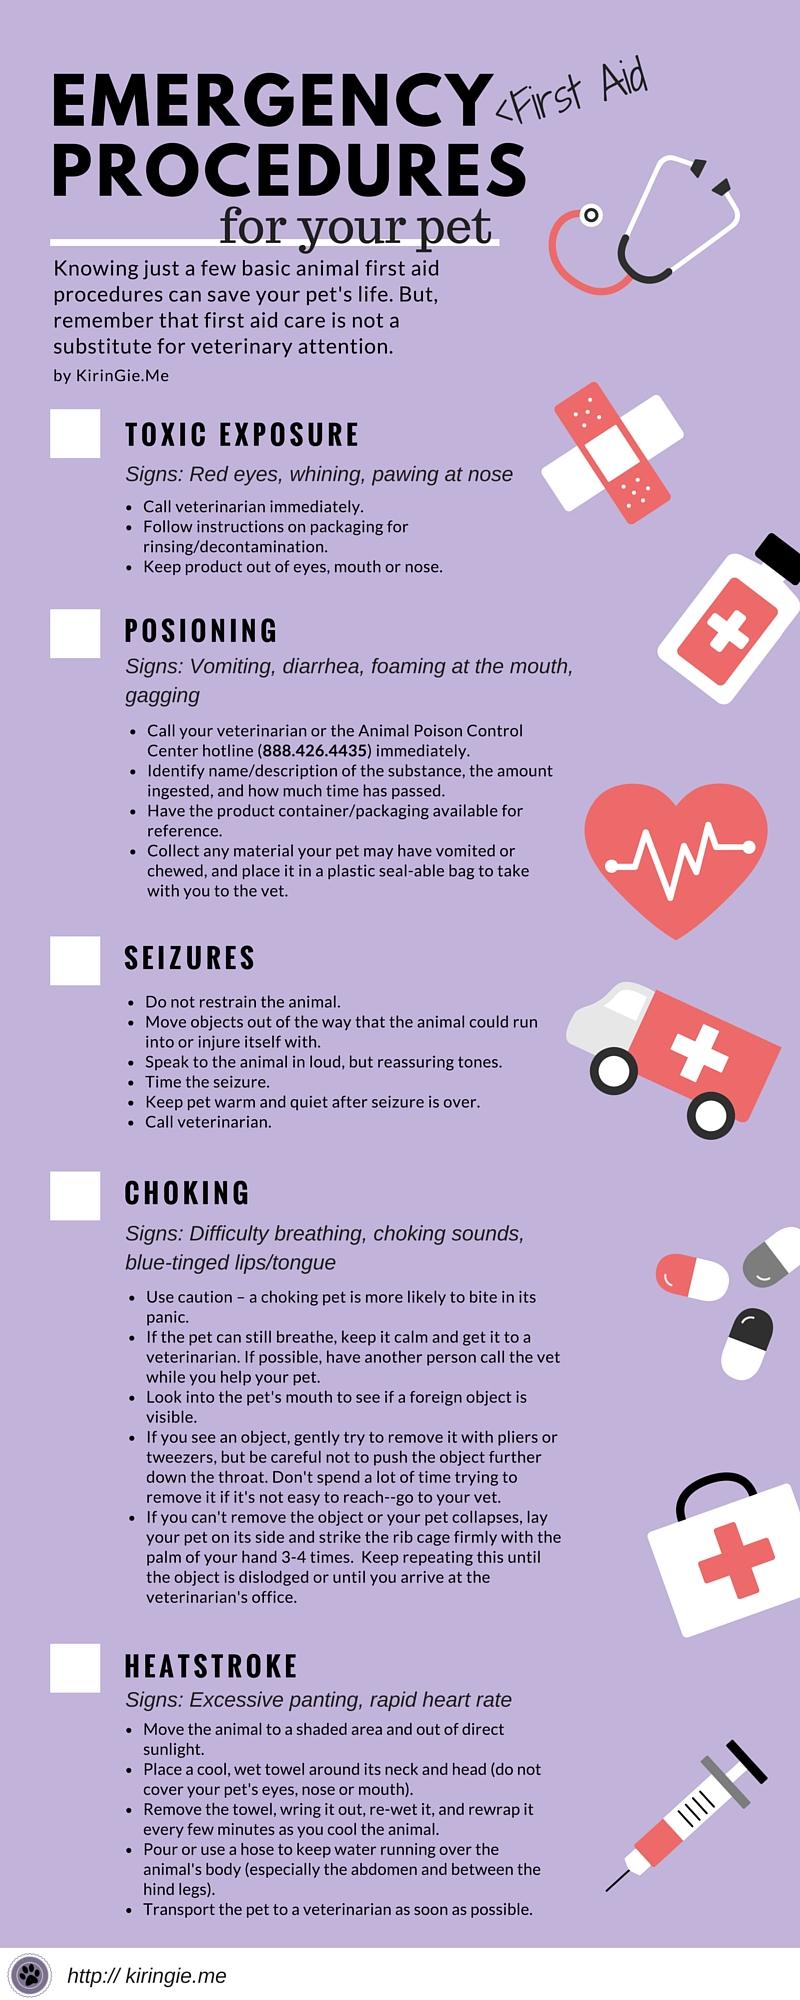 emergency care and first aid These first aid tips from royal life saving may help you to provide first aid in an  emergency we all respond to first aid emergencies in different ways some of us .